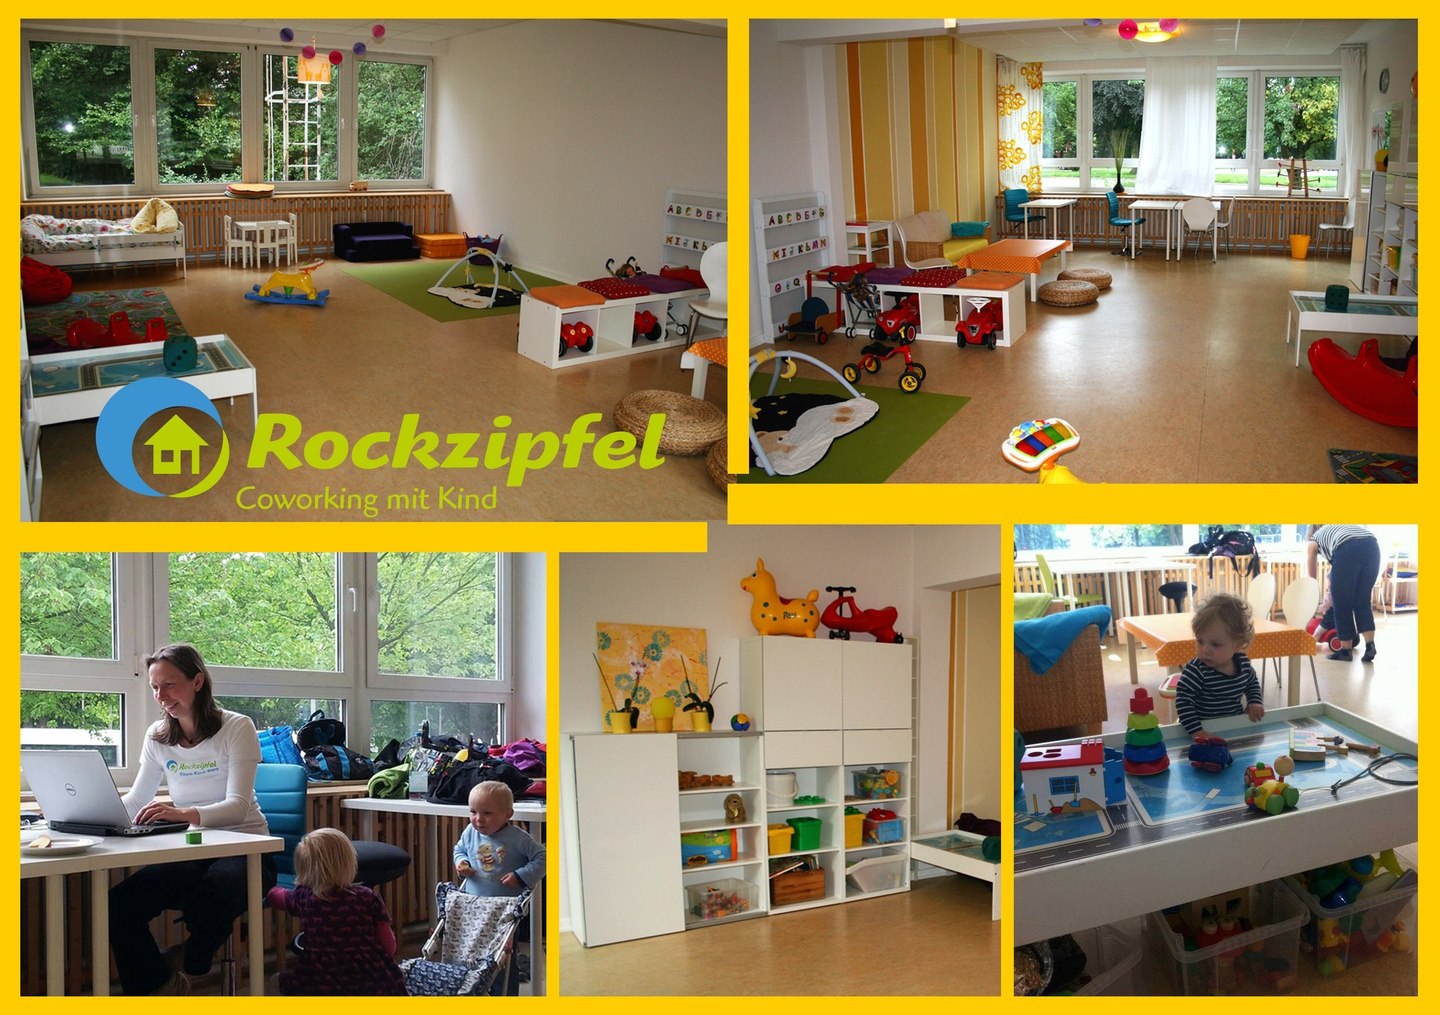 Hamburg training rooms Espace de Coworking Rockzipfel - Coworking with Kids @ Hub3 image 1